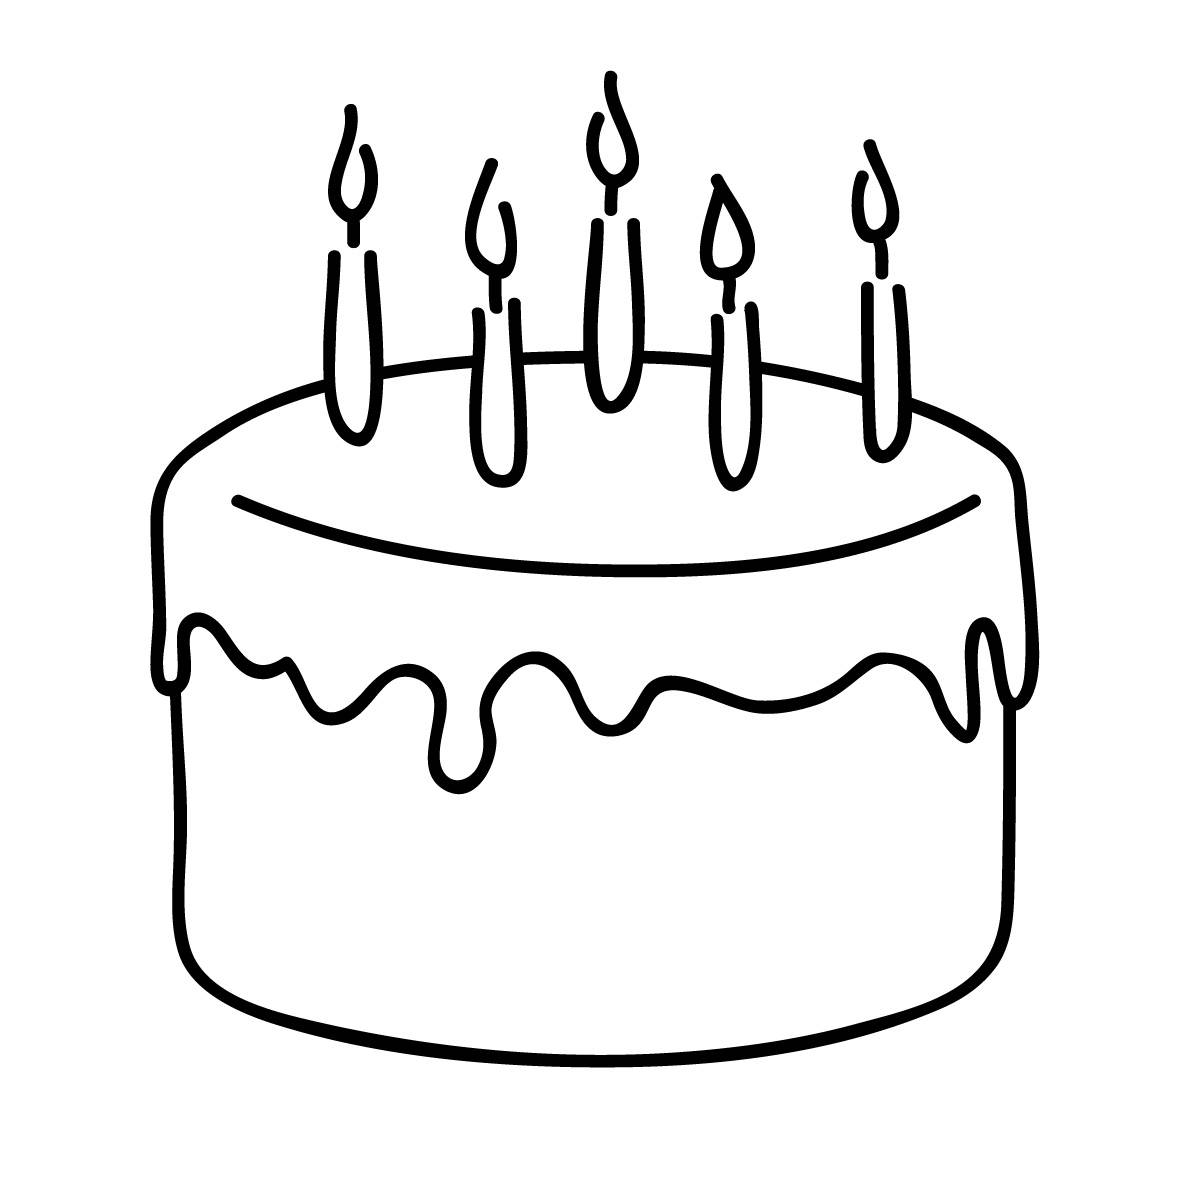 Cake clipart black and white png freeuse stock Birthday Cake Clipart Black And White | Clipart Panda - Free Clipart ... png freeuse stock